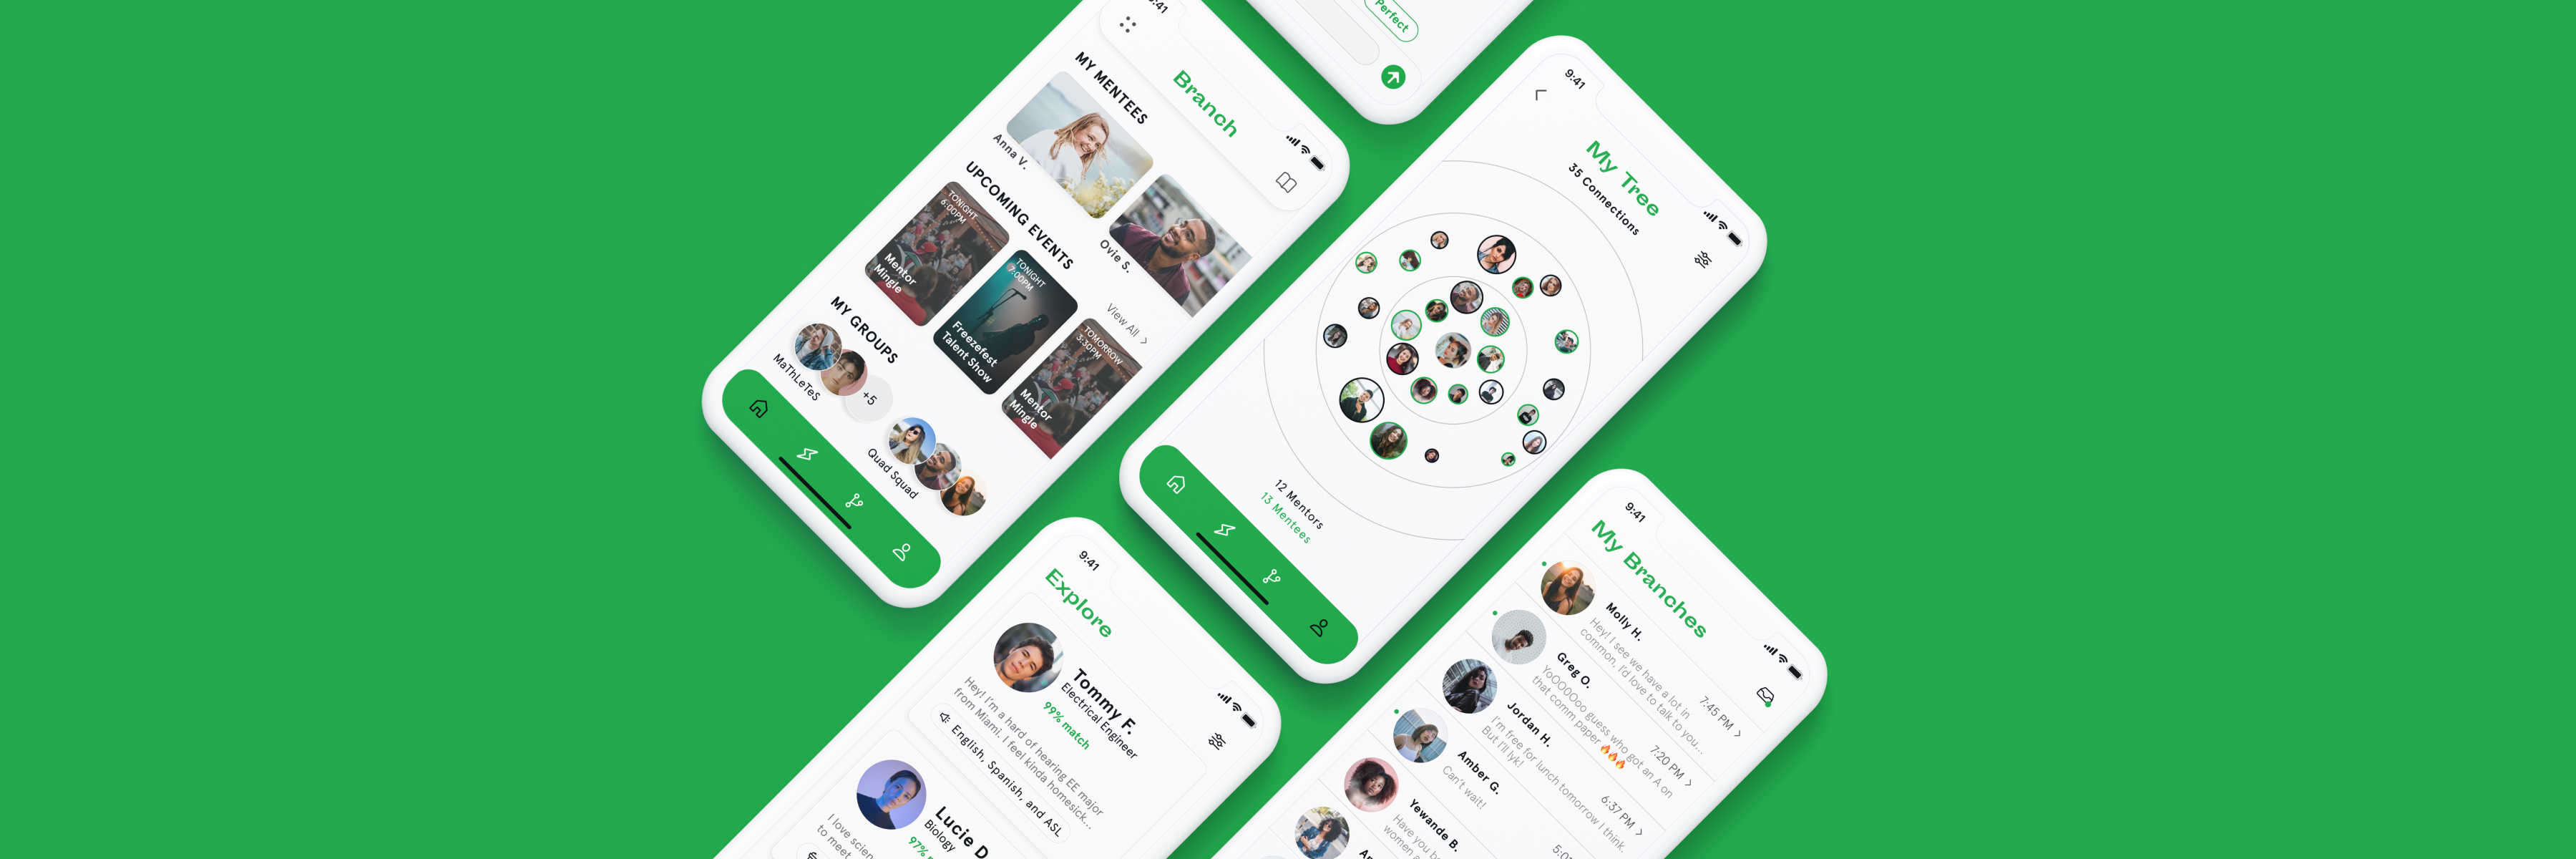 clay iphone mockups of branch app on green background